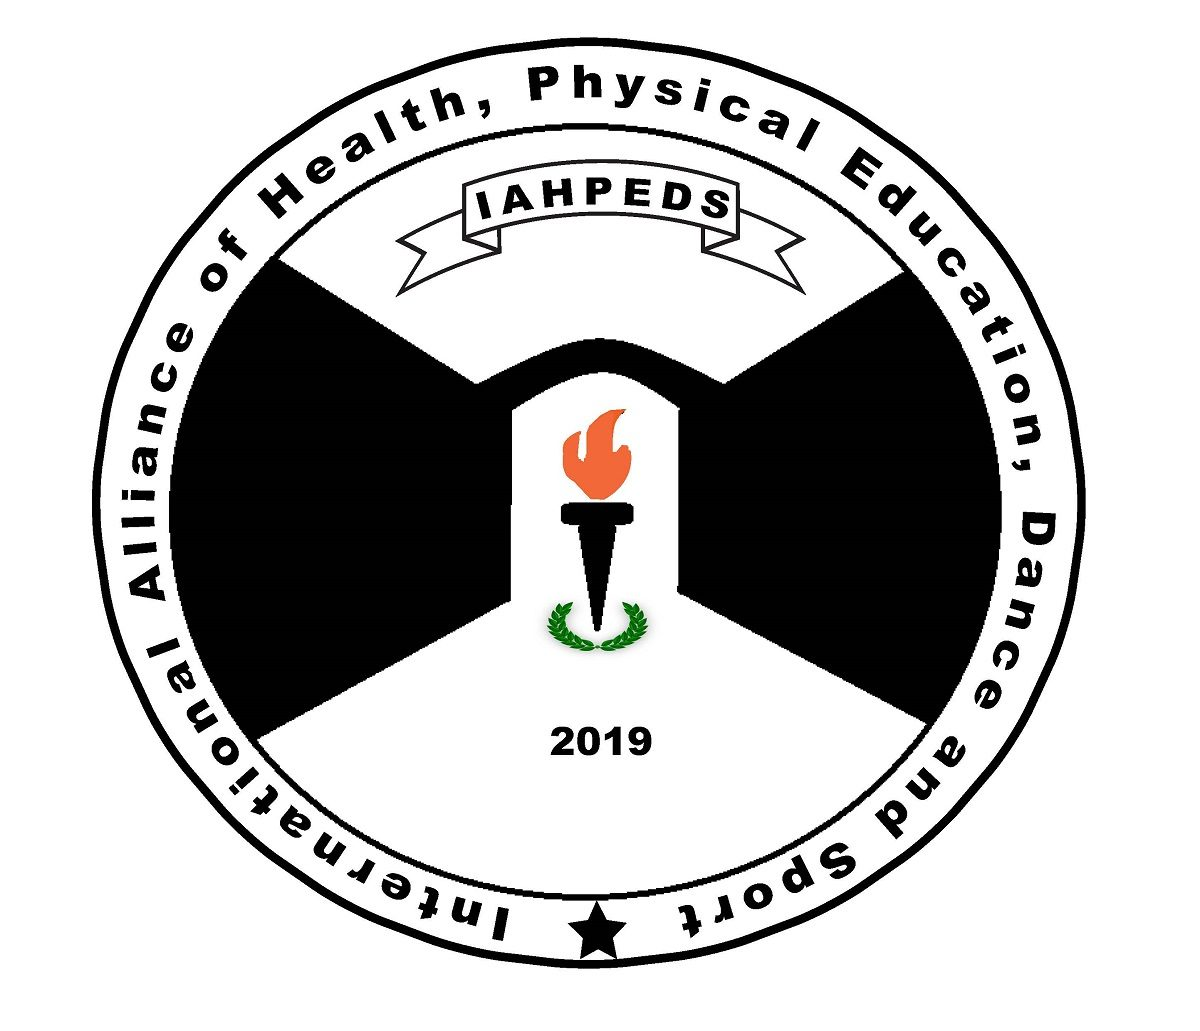 INTERNATIONAL ALLIANCE OF HEALTH, PHYSICAL EDUCATION, DANCE AND SPORT – IAHPEDS